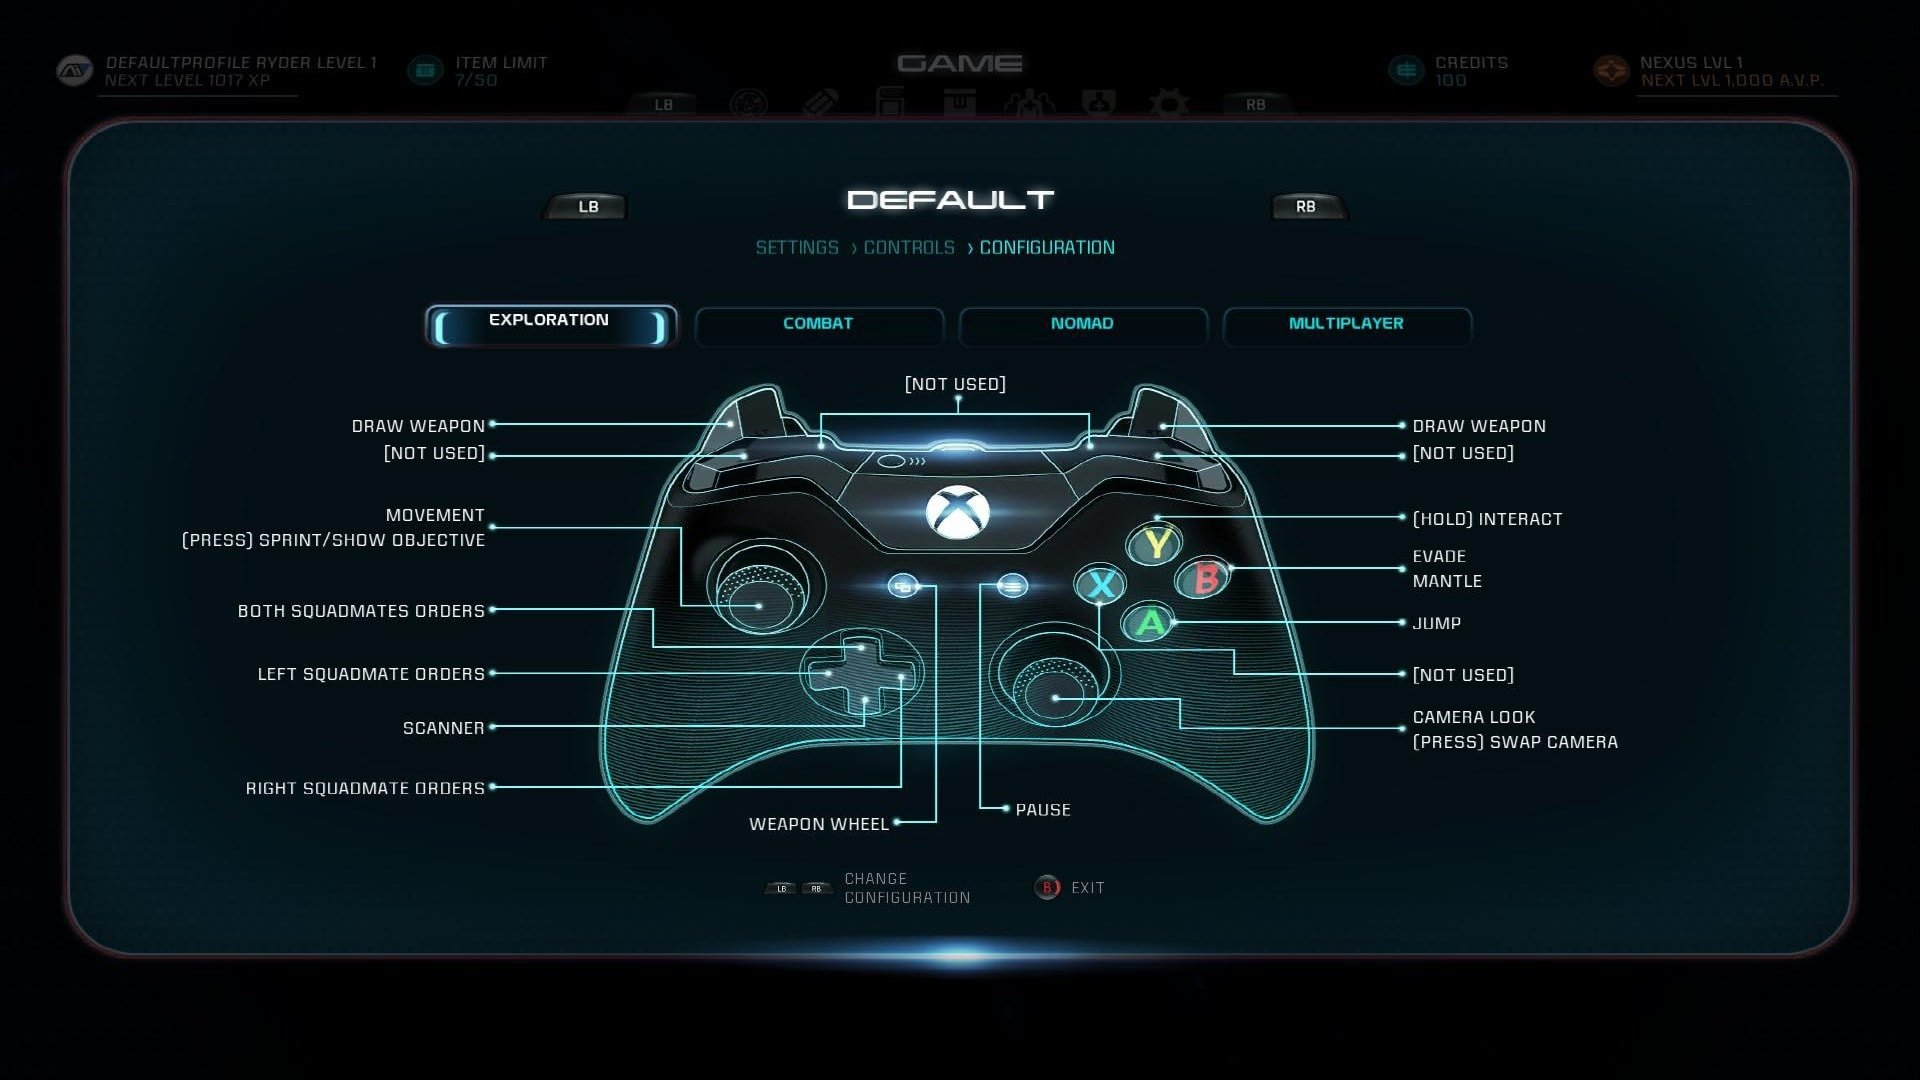 Xbox One Controls Mass Effect Andromeda Wiki Game Ps4 Xboxone 1 Small Min 2